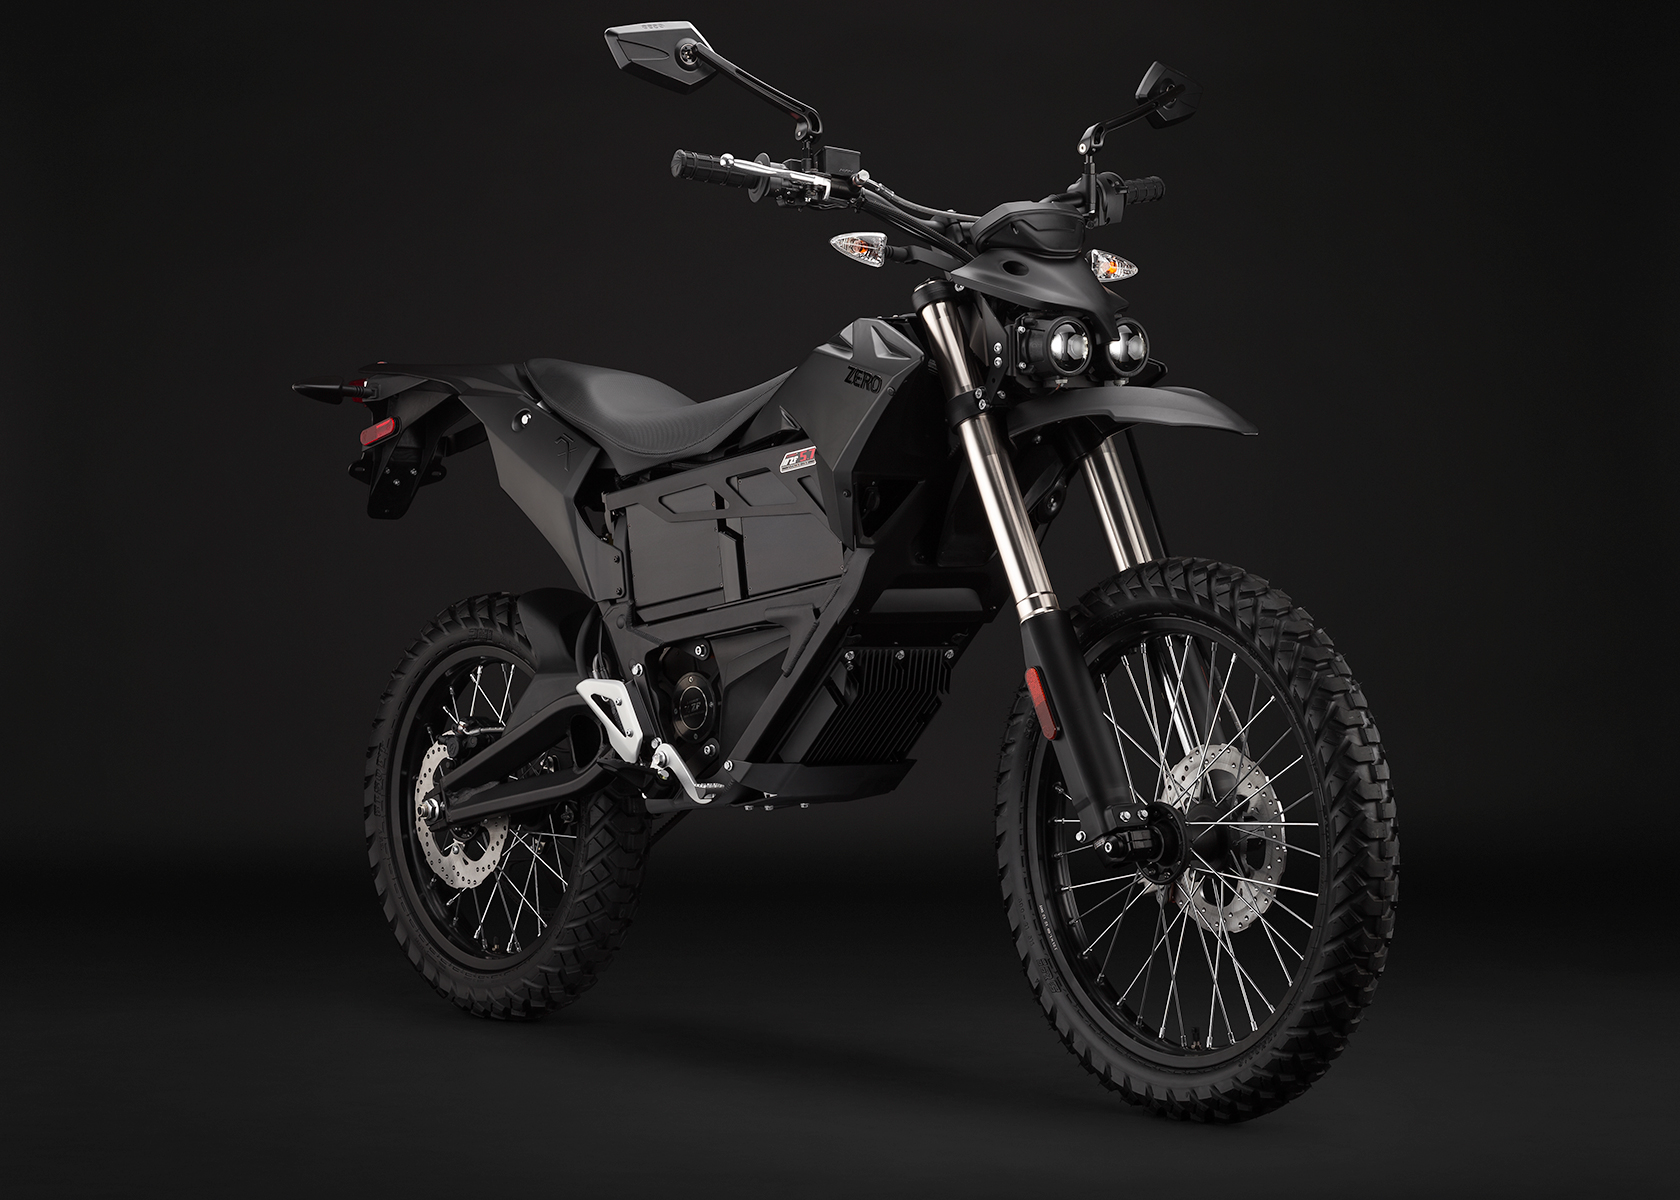 2014 Zero FX Electric Motorcycle: Black Angle Right